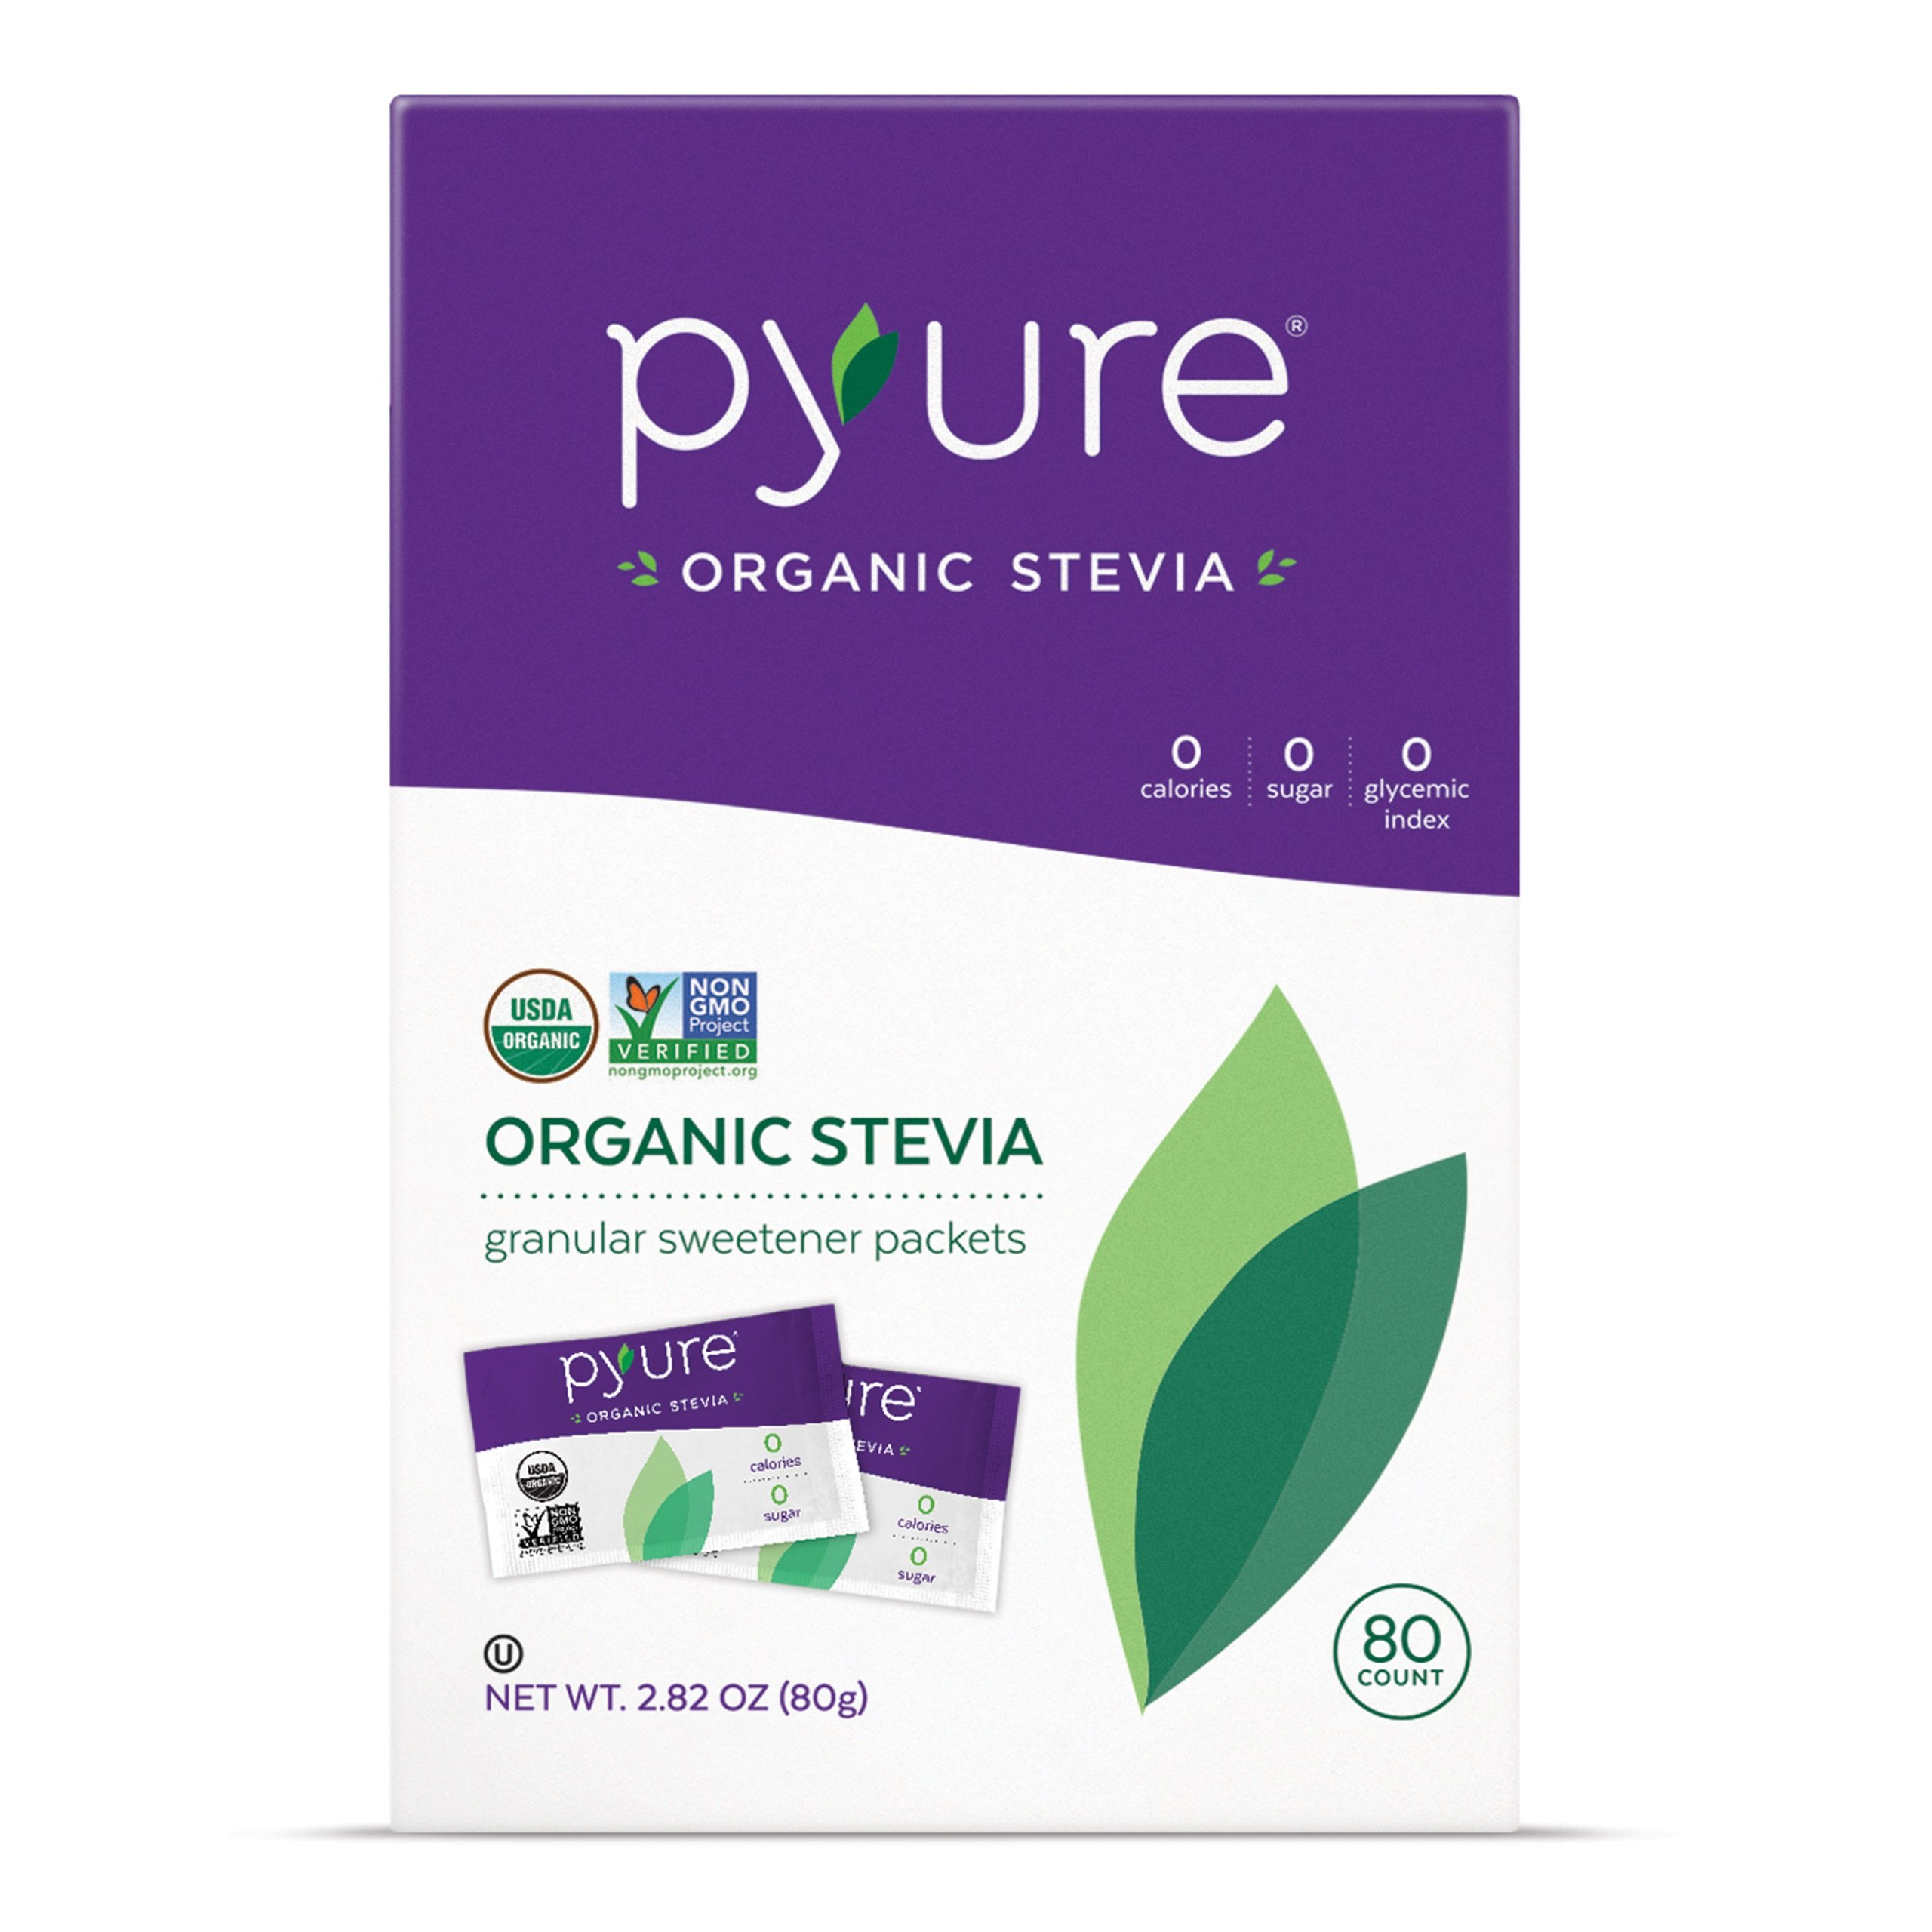 Pyure Organic Stevia Sweetener Packets, 0 Calorie, Sugar Substitute, 80 Count by Pyure (Image #1)